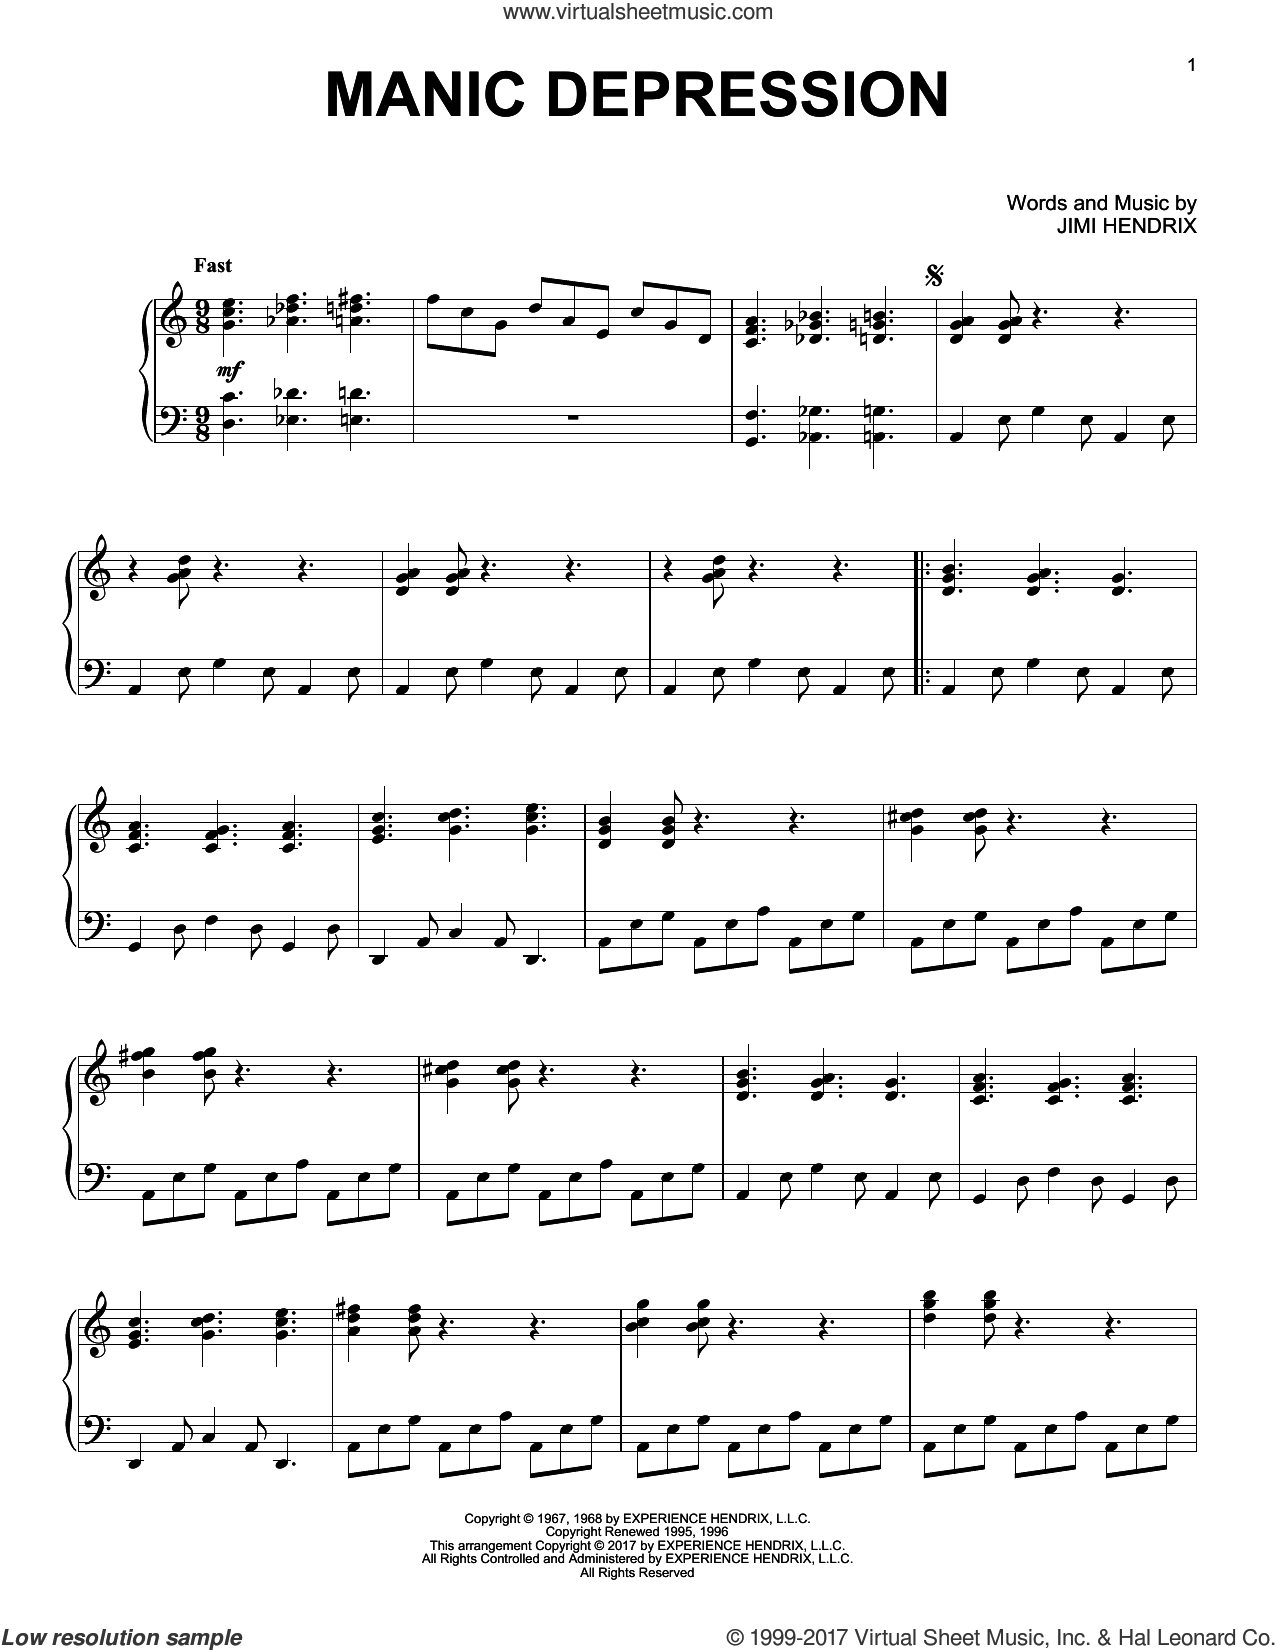 Manic Depression sheet music for piano solo by Jimi Hendrix, intermediate skill level